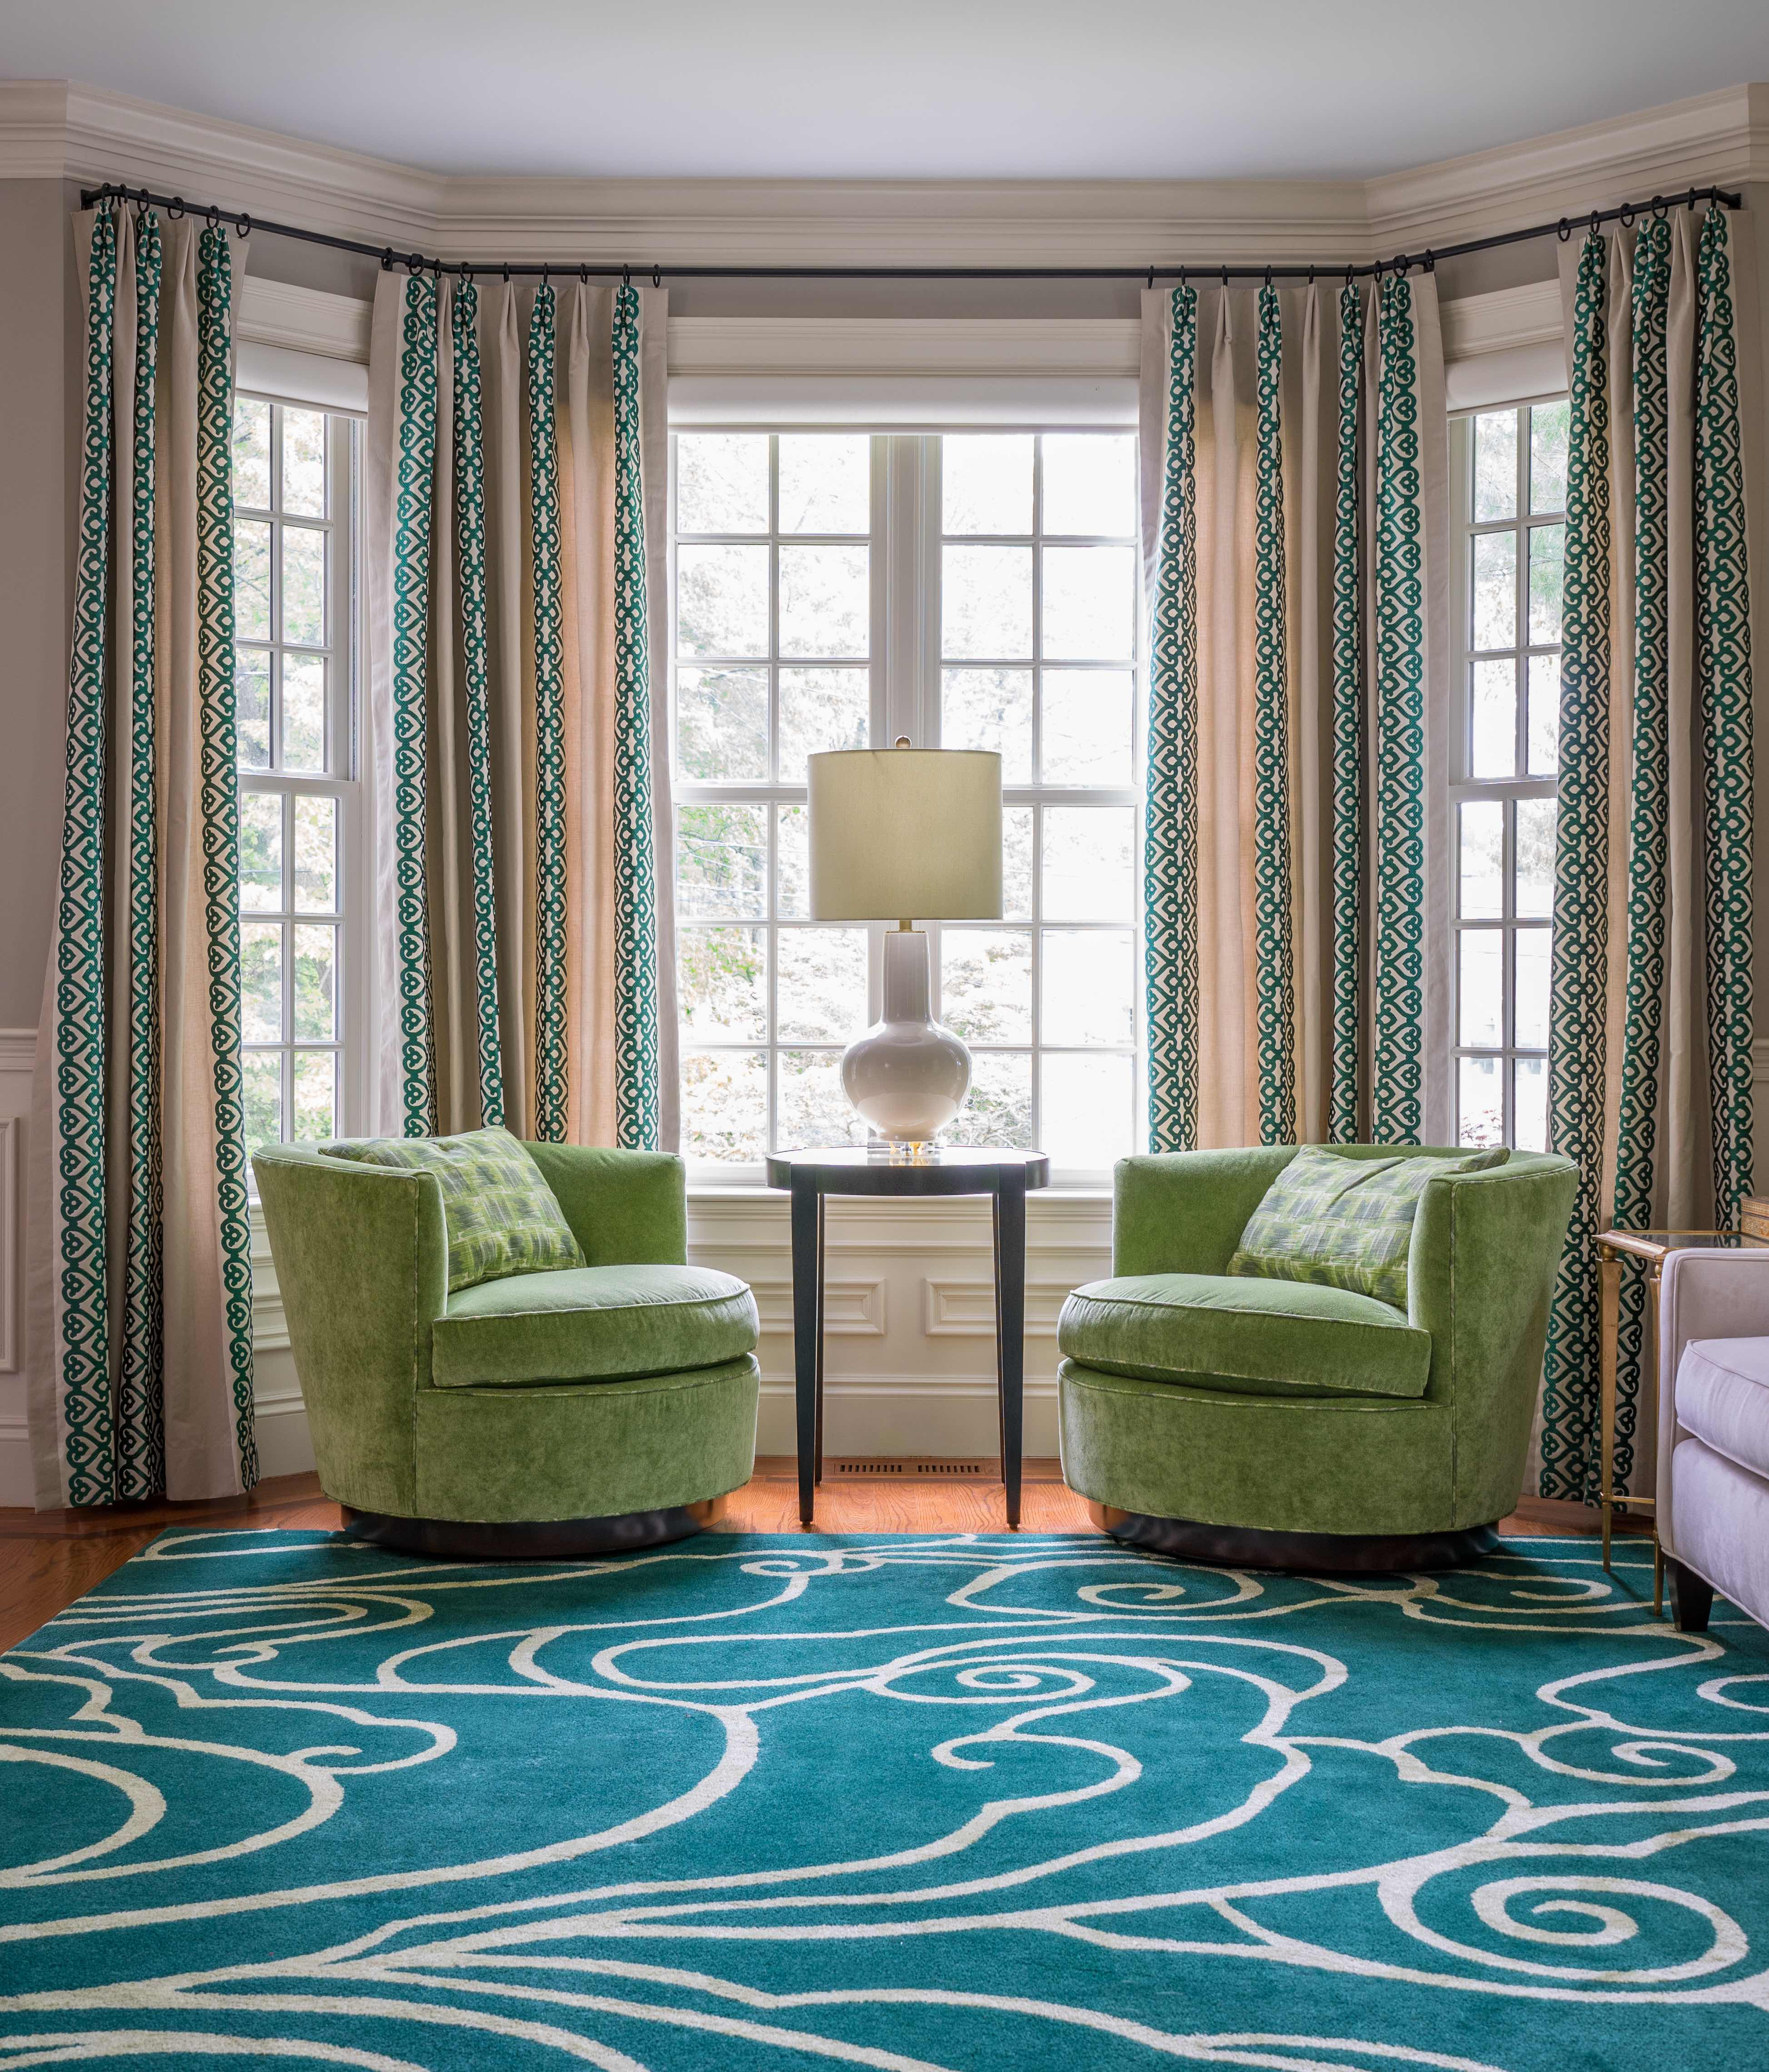 Project Reveal: Lexington Green | Kelly Rogers Interiors | Interiors for Families